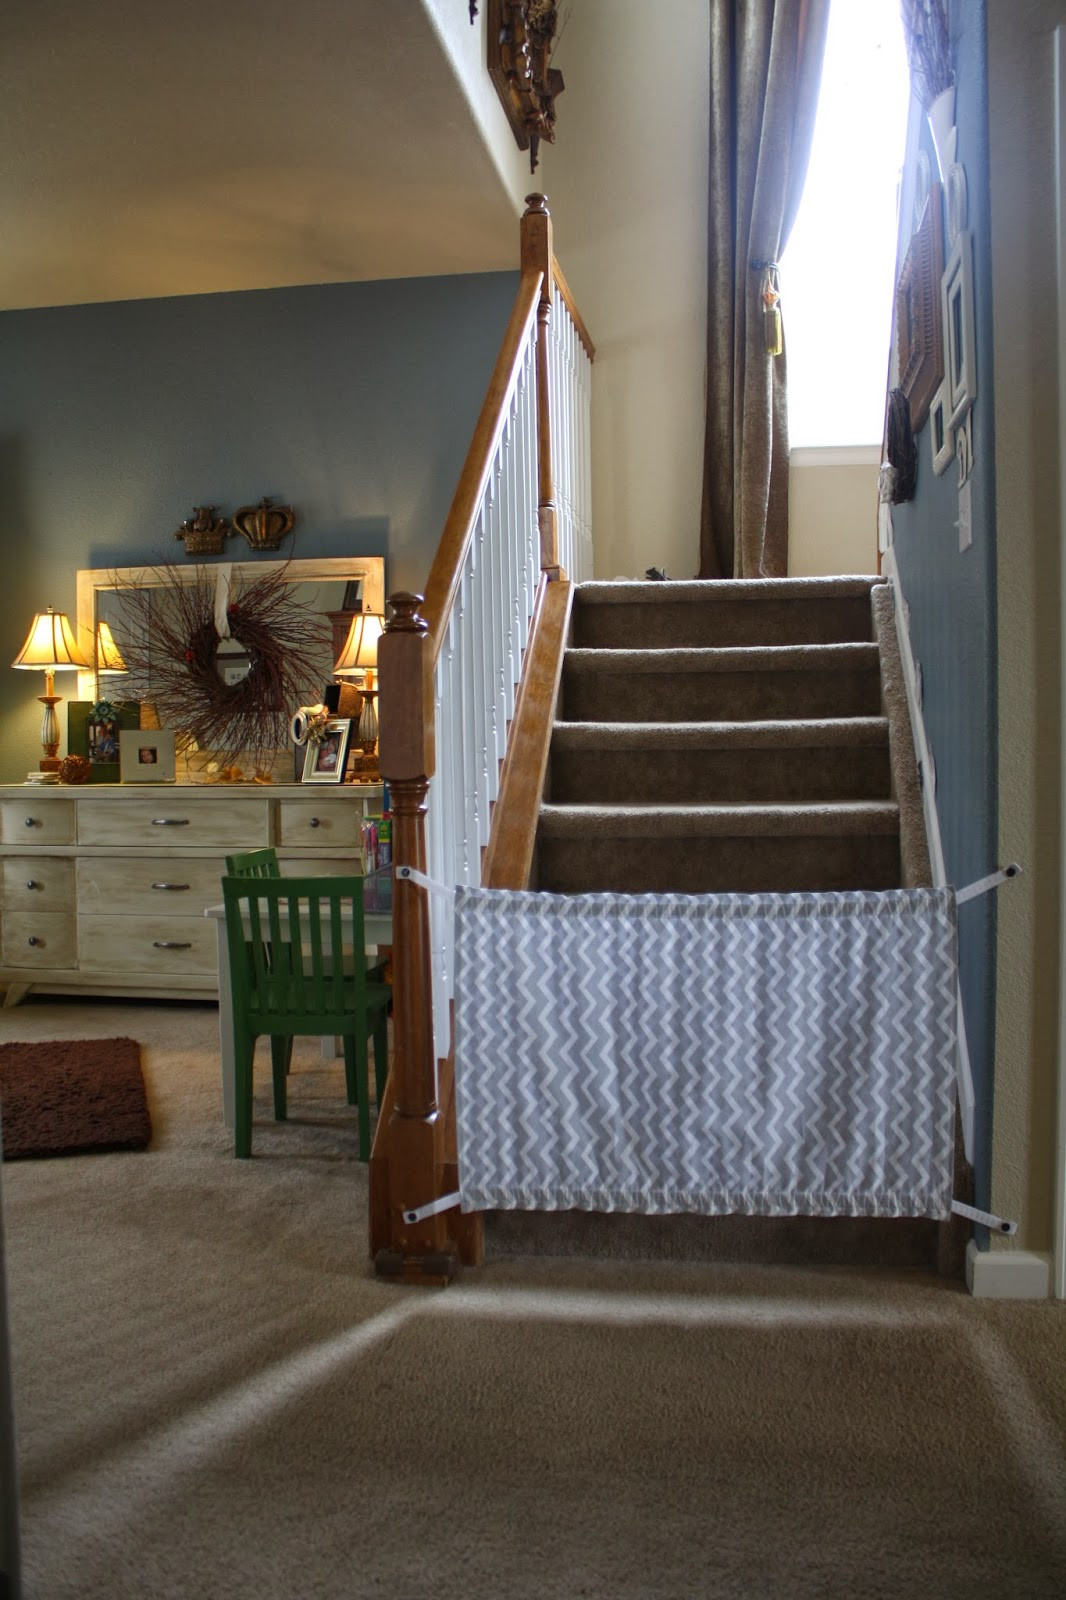 Best ideas about DIY Baby Gate For Stairs . Save or Pin McCash Family blog Homemade Baby Gate A Tutorial Now.